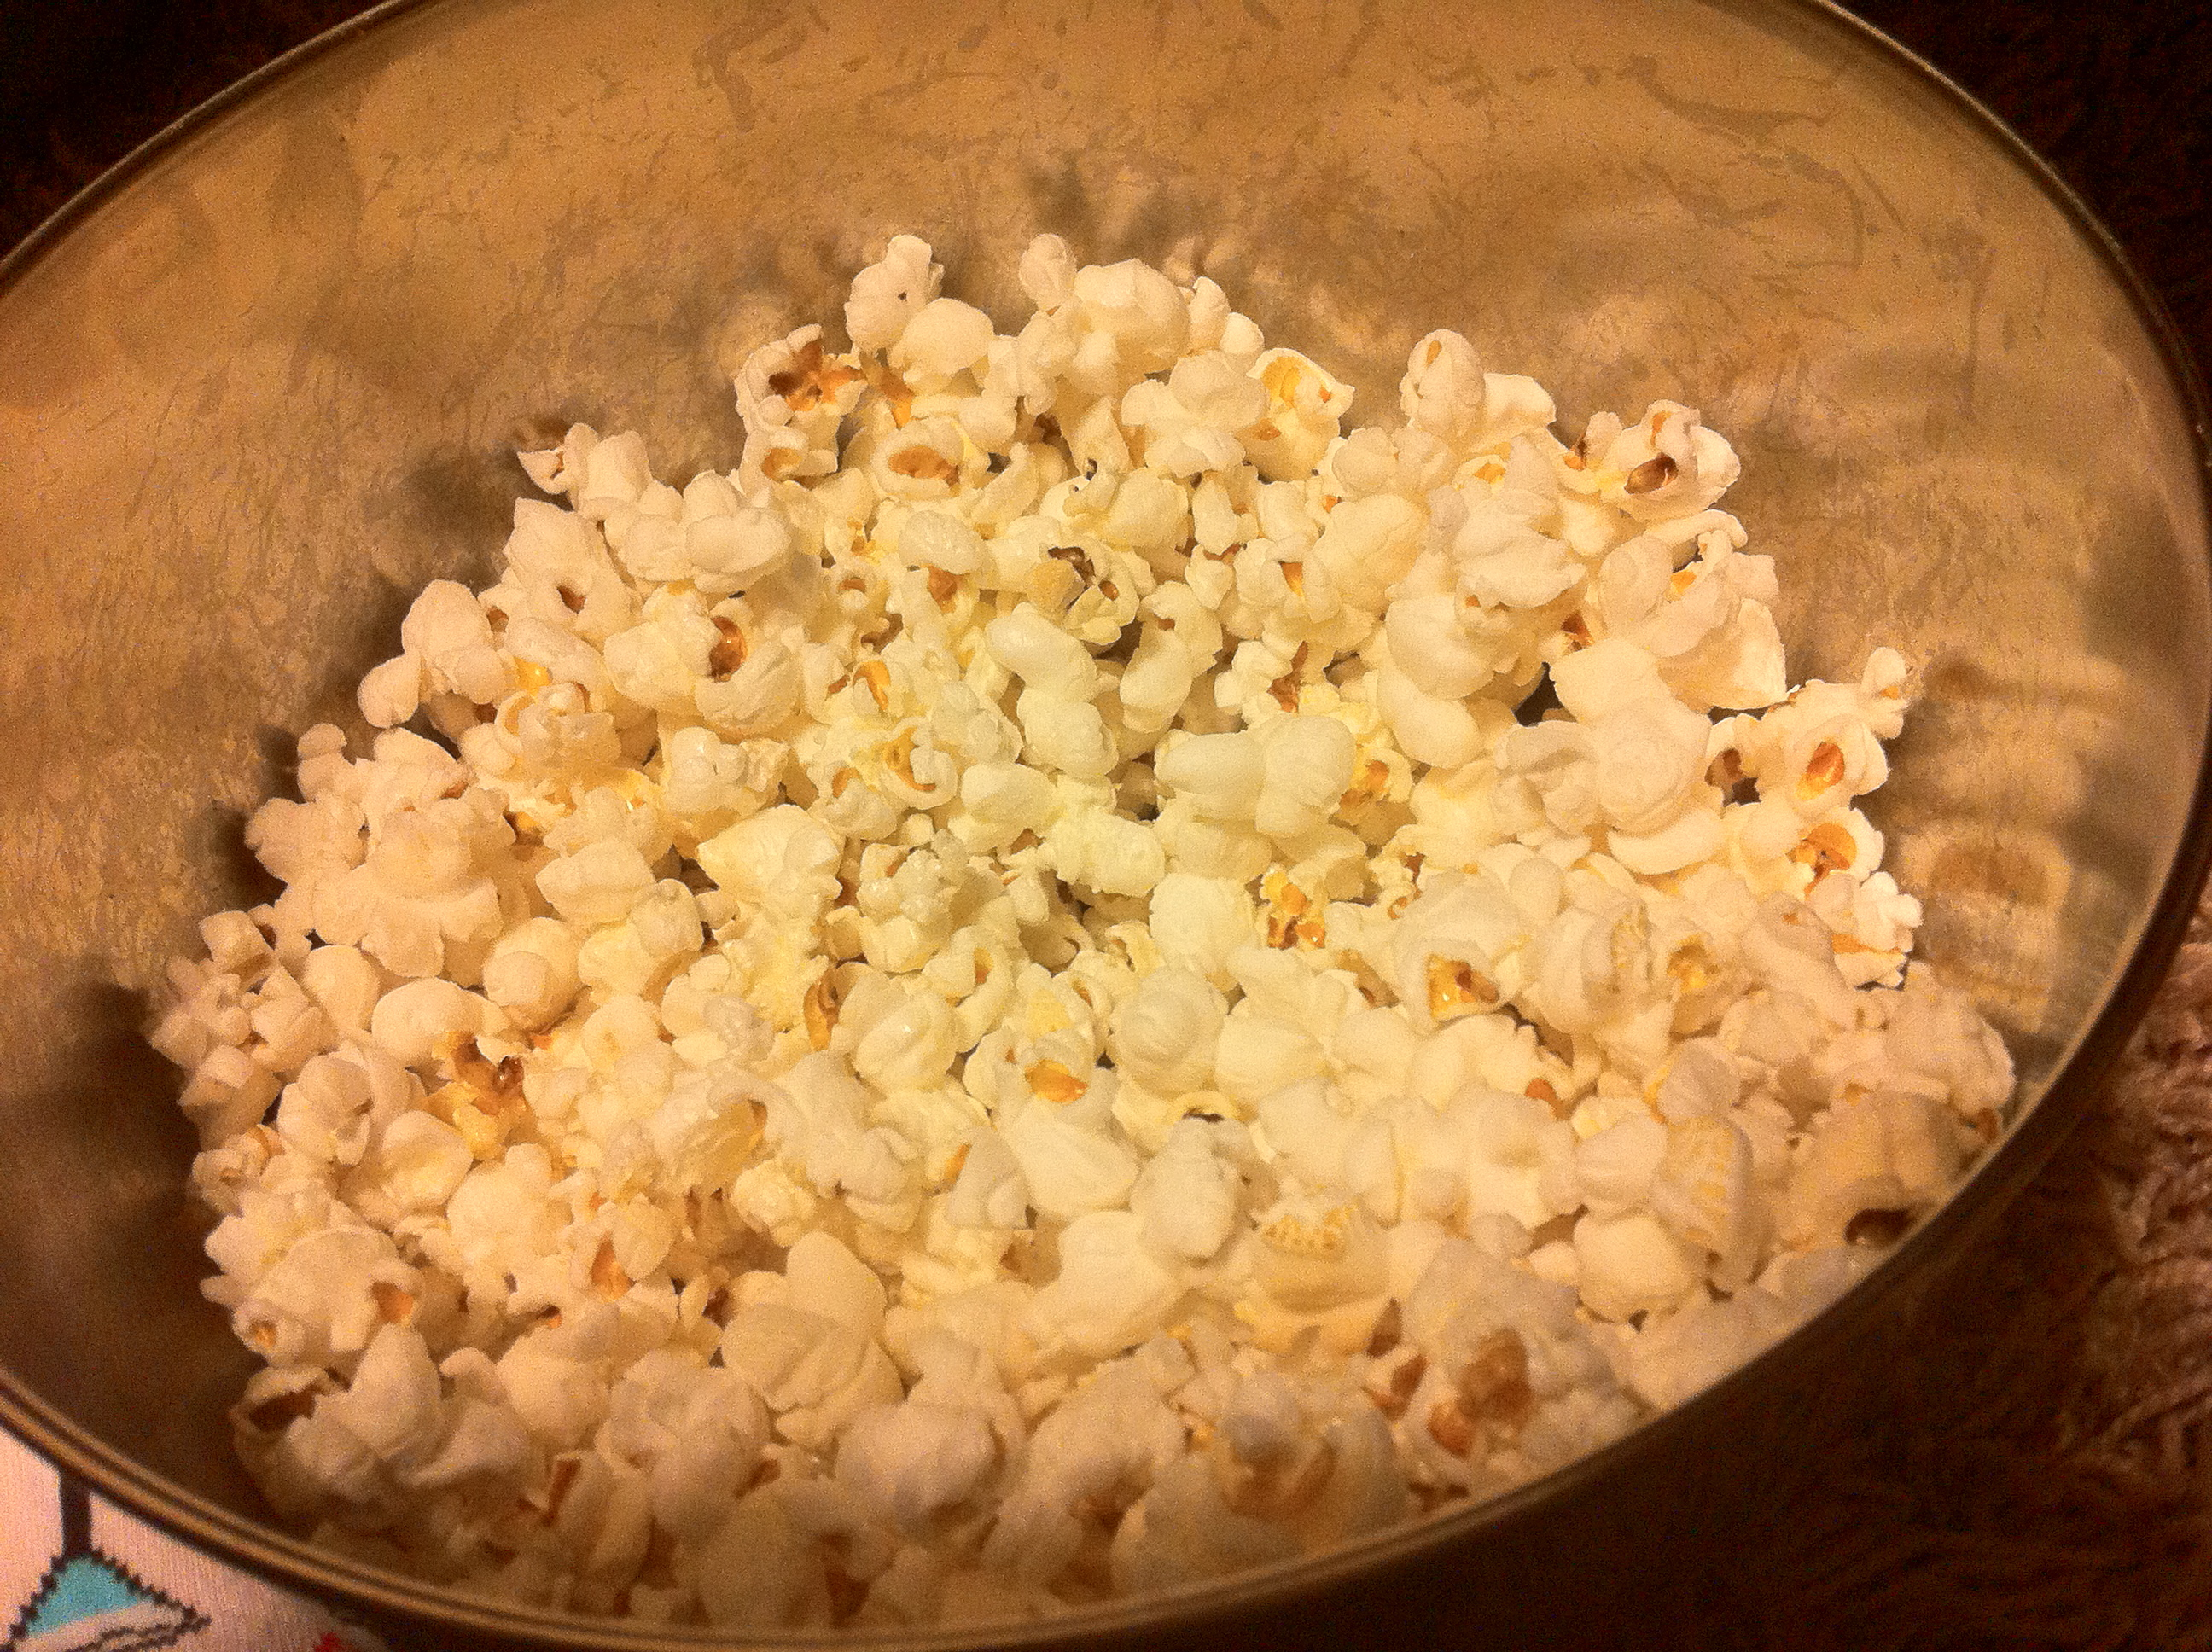 easy Homemade Stove Top Popcorn by Aurora Meyer on Dispatches from the Castle